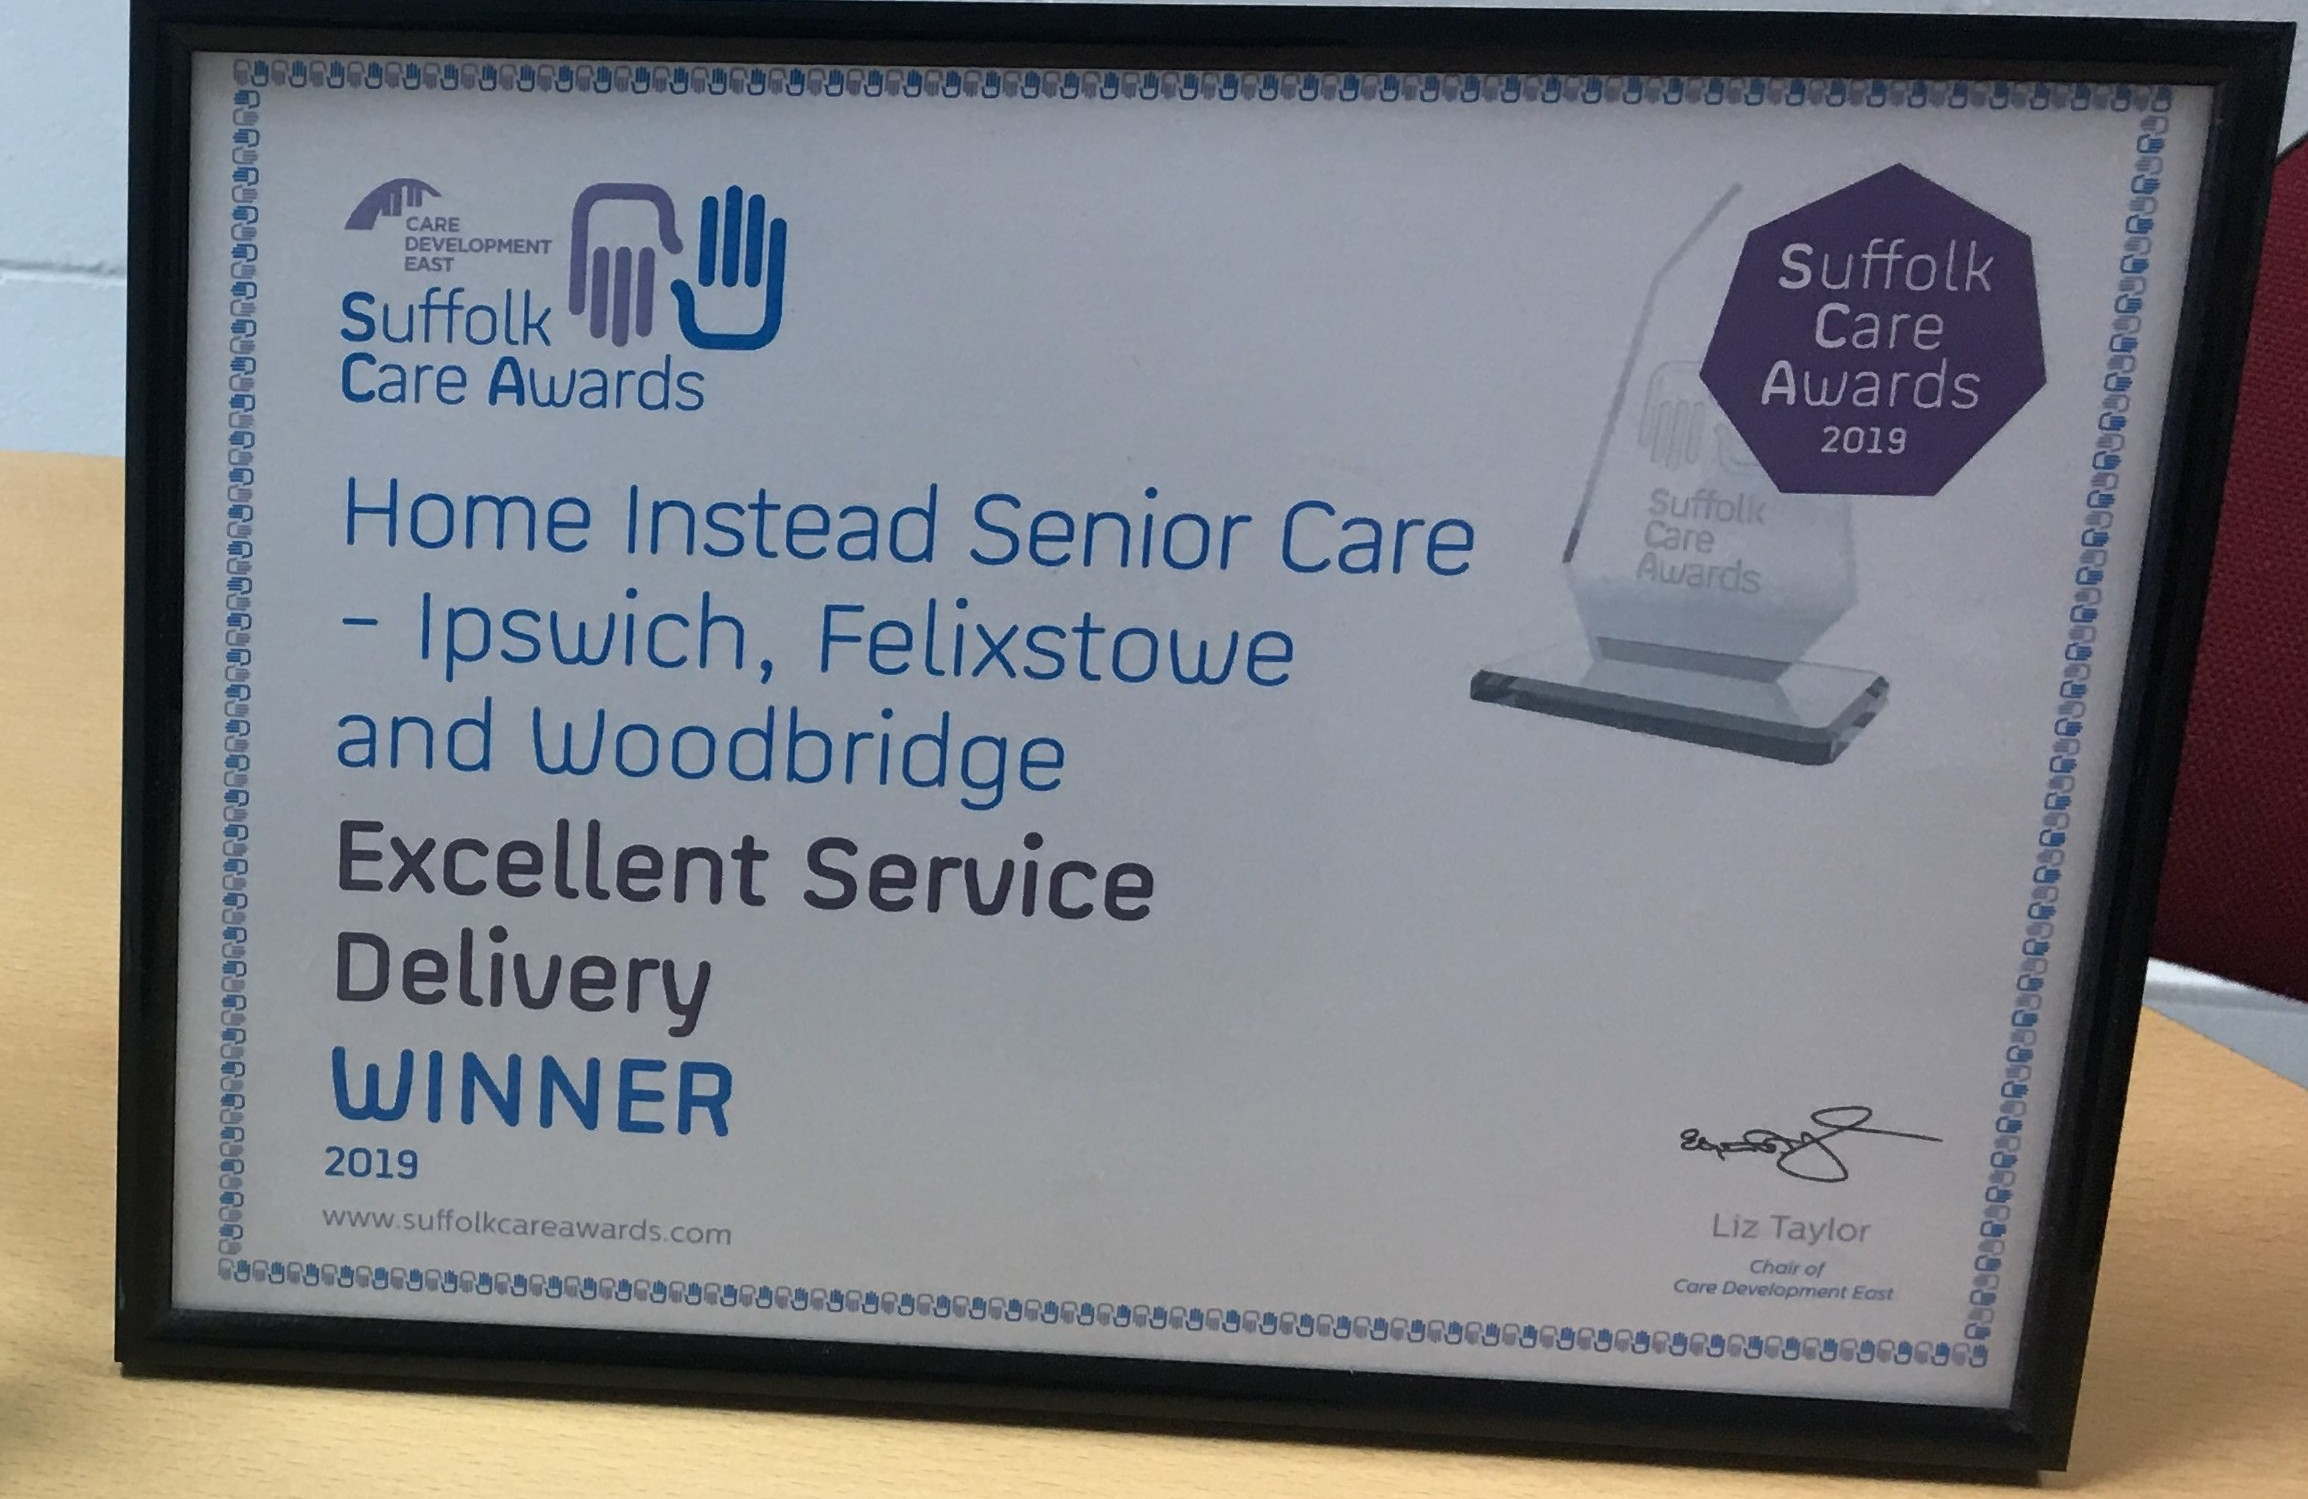 Suffolk Care Awards 2019